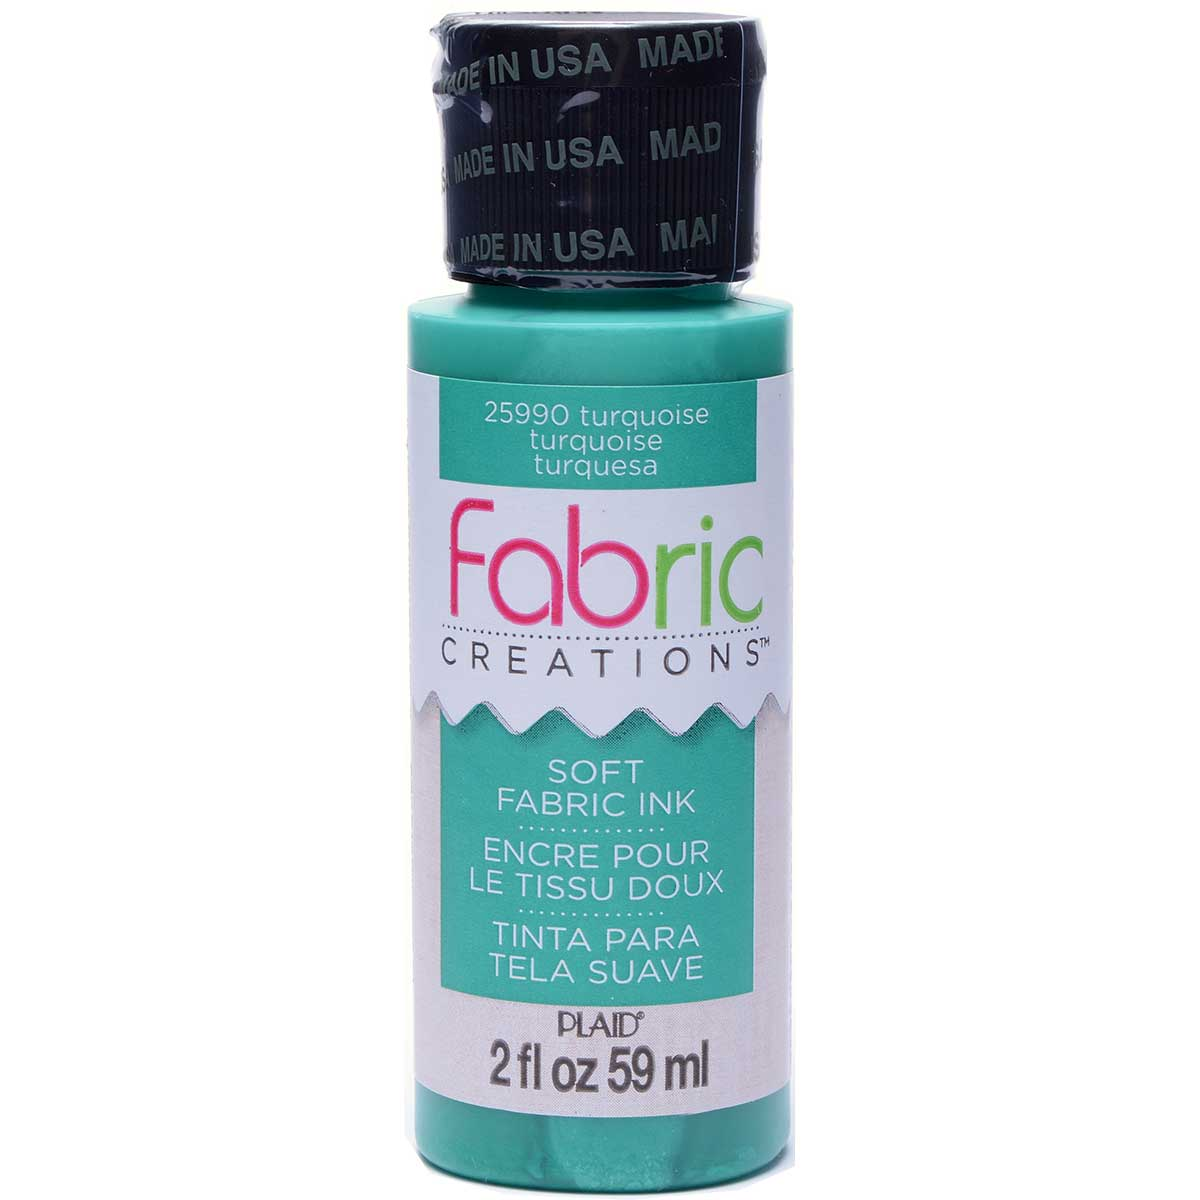 Fabric Creations™ Soft Fabric Inks - Turquoise, 2 oz.